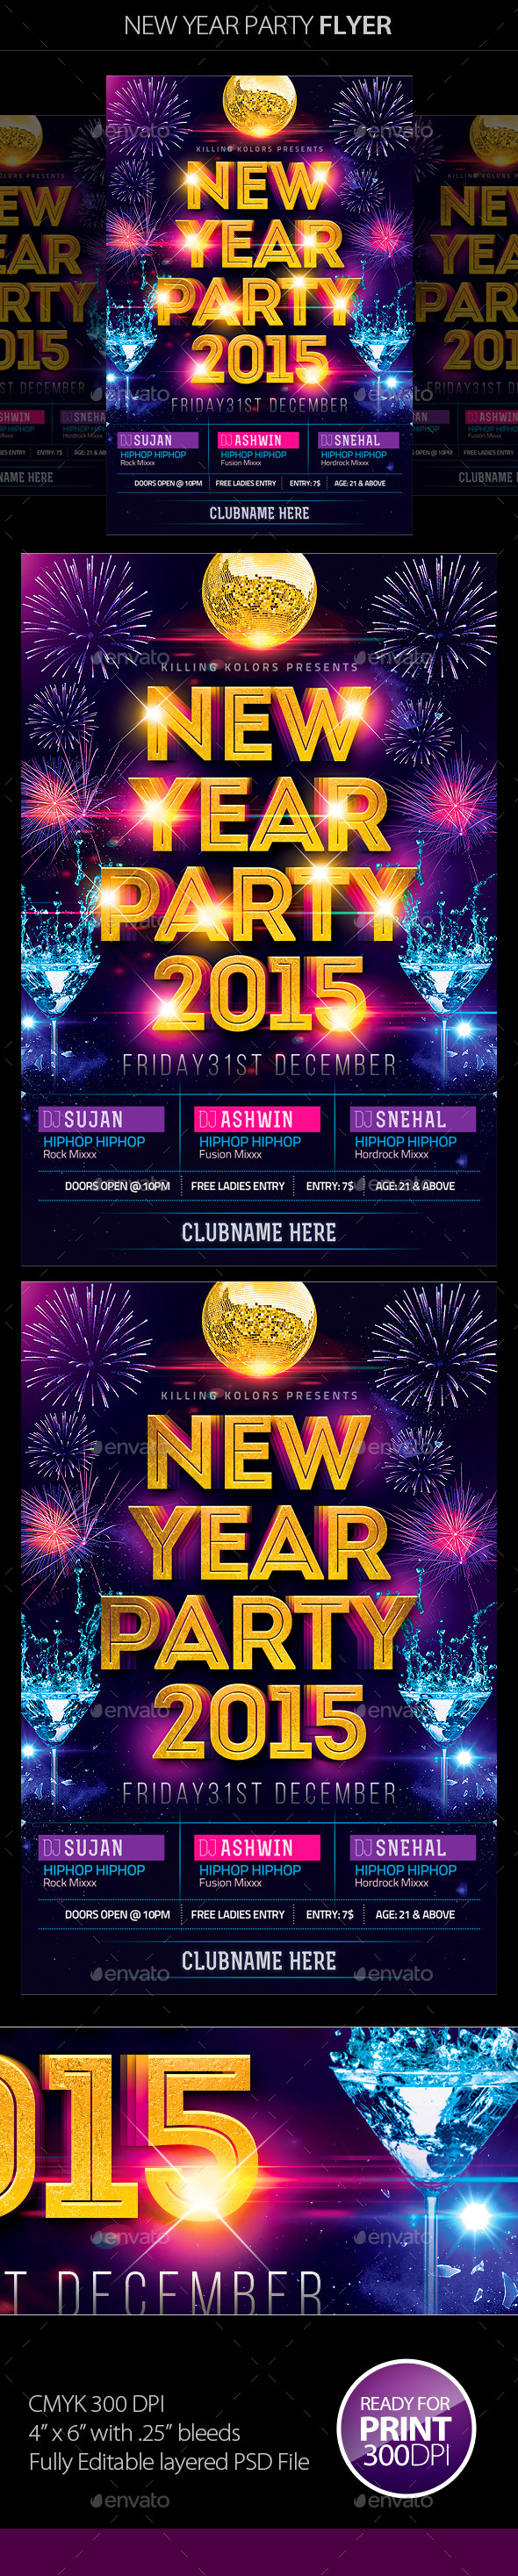 GraphicRiver New Year Party Flyer 9723803